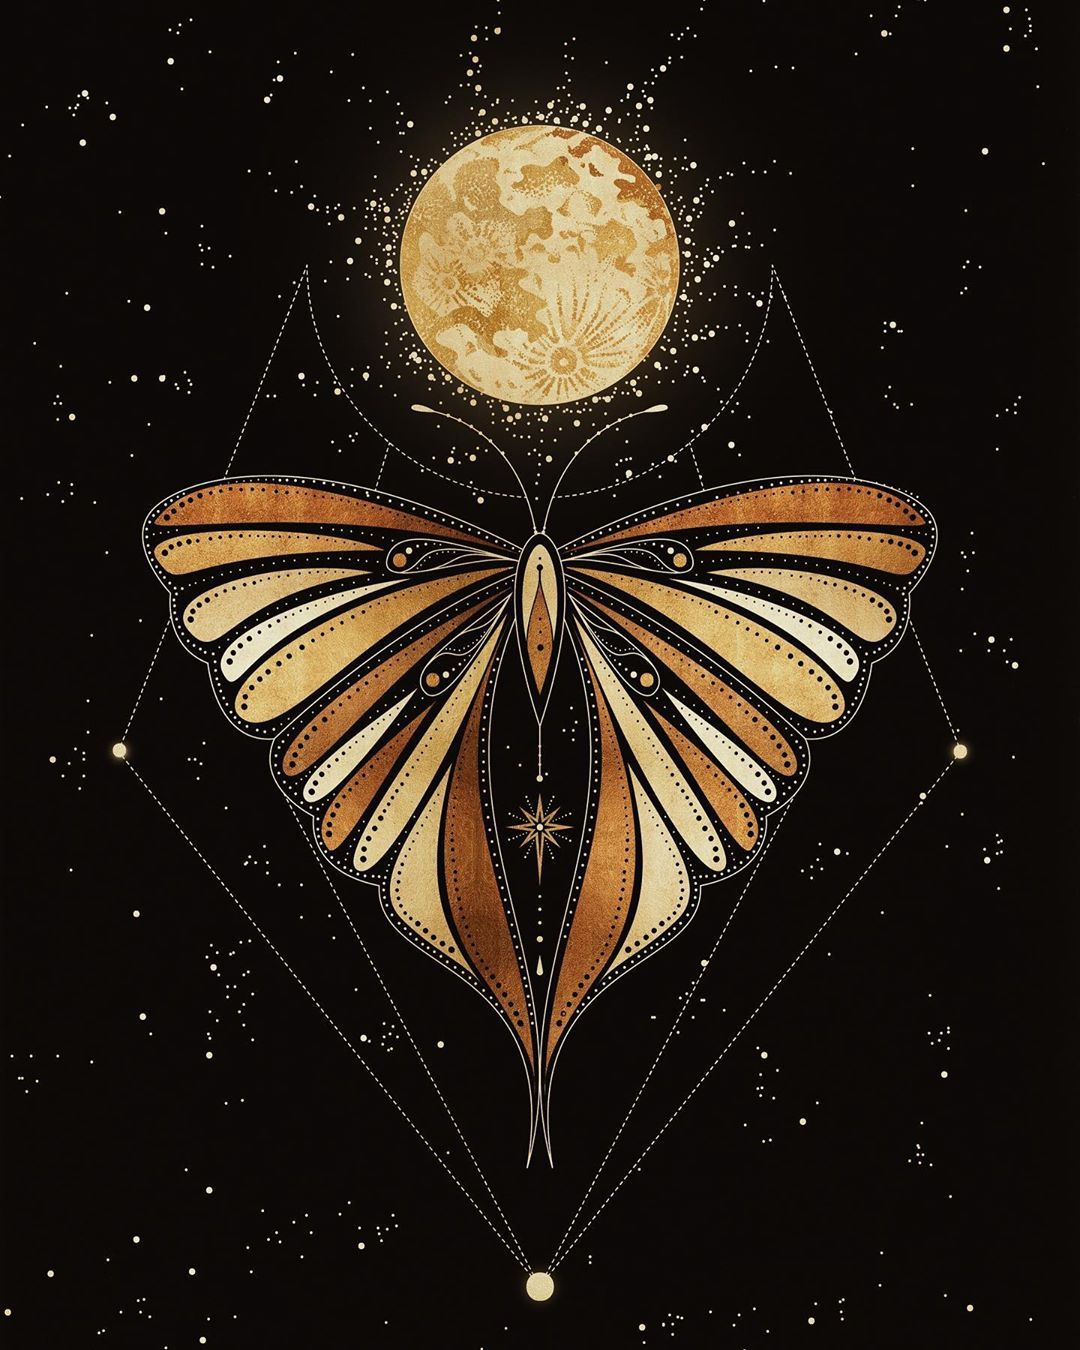 Full Moon Butterfly Gold Foil Art Print By Cocorrina Design Studio Celestial Art Moon Art Mystical Art